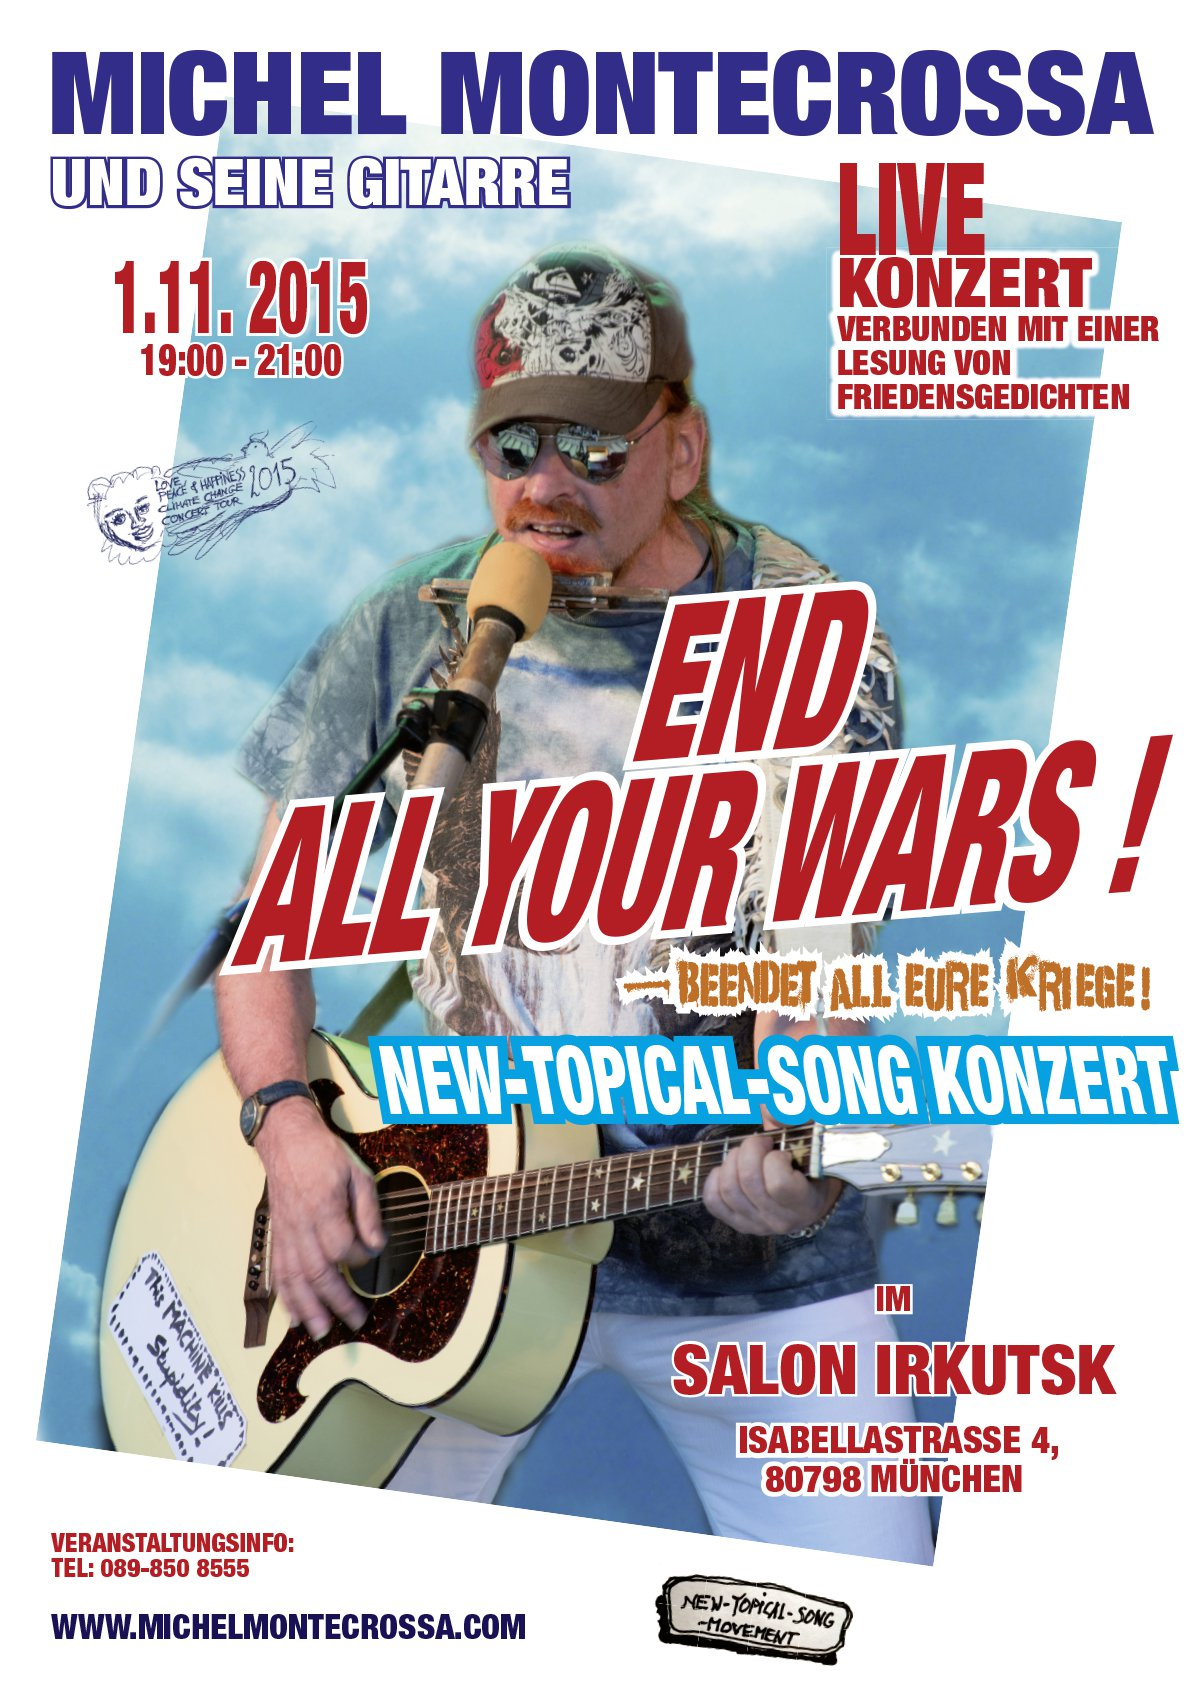 End All Your Wars - Beendet All Eure Kriege im Salon Irkutsk